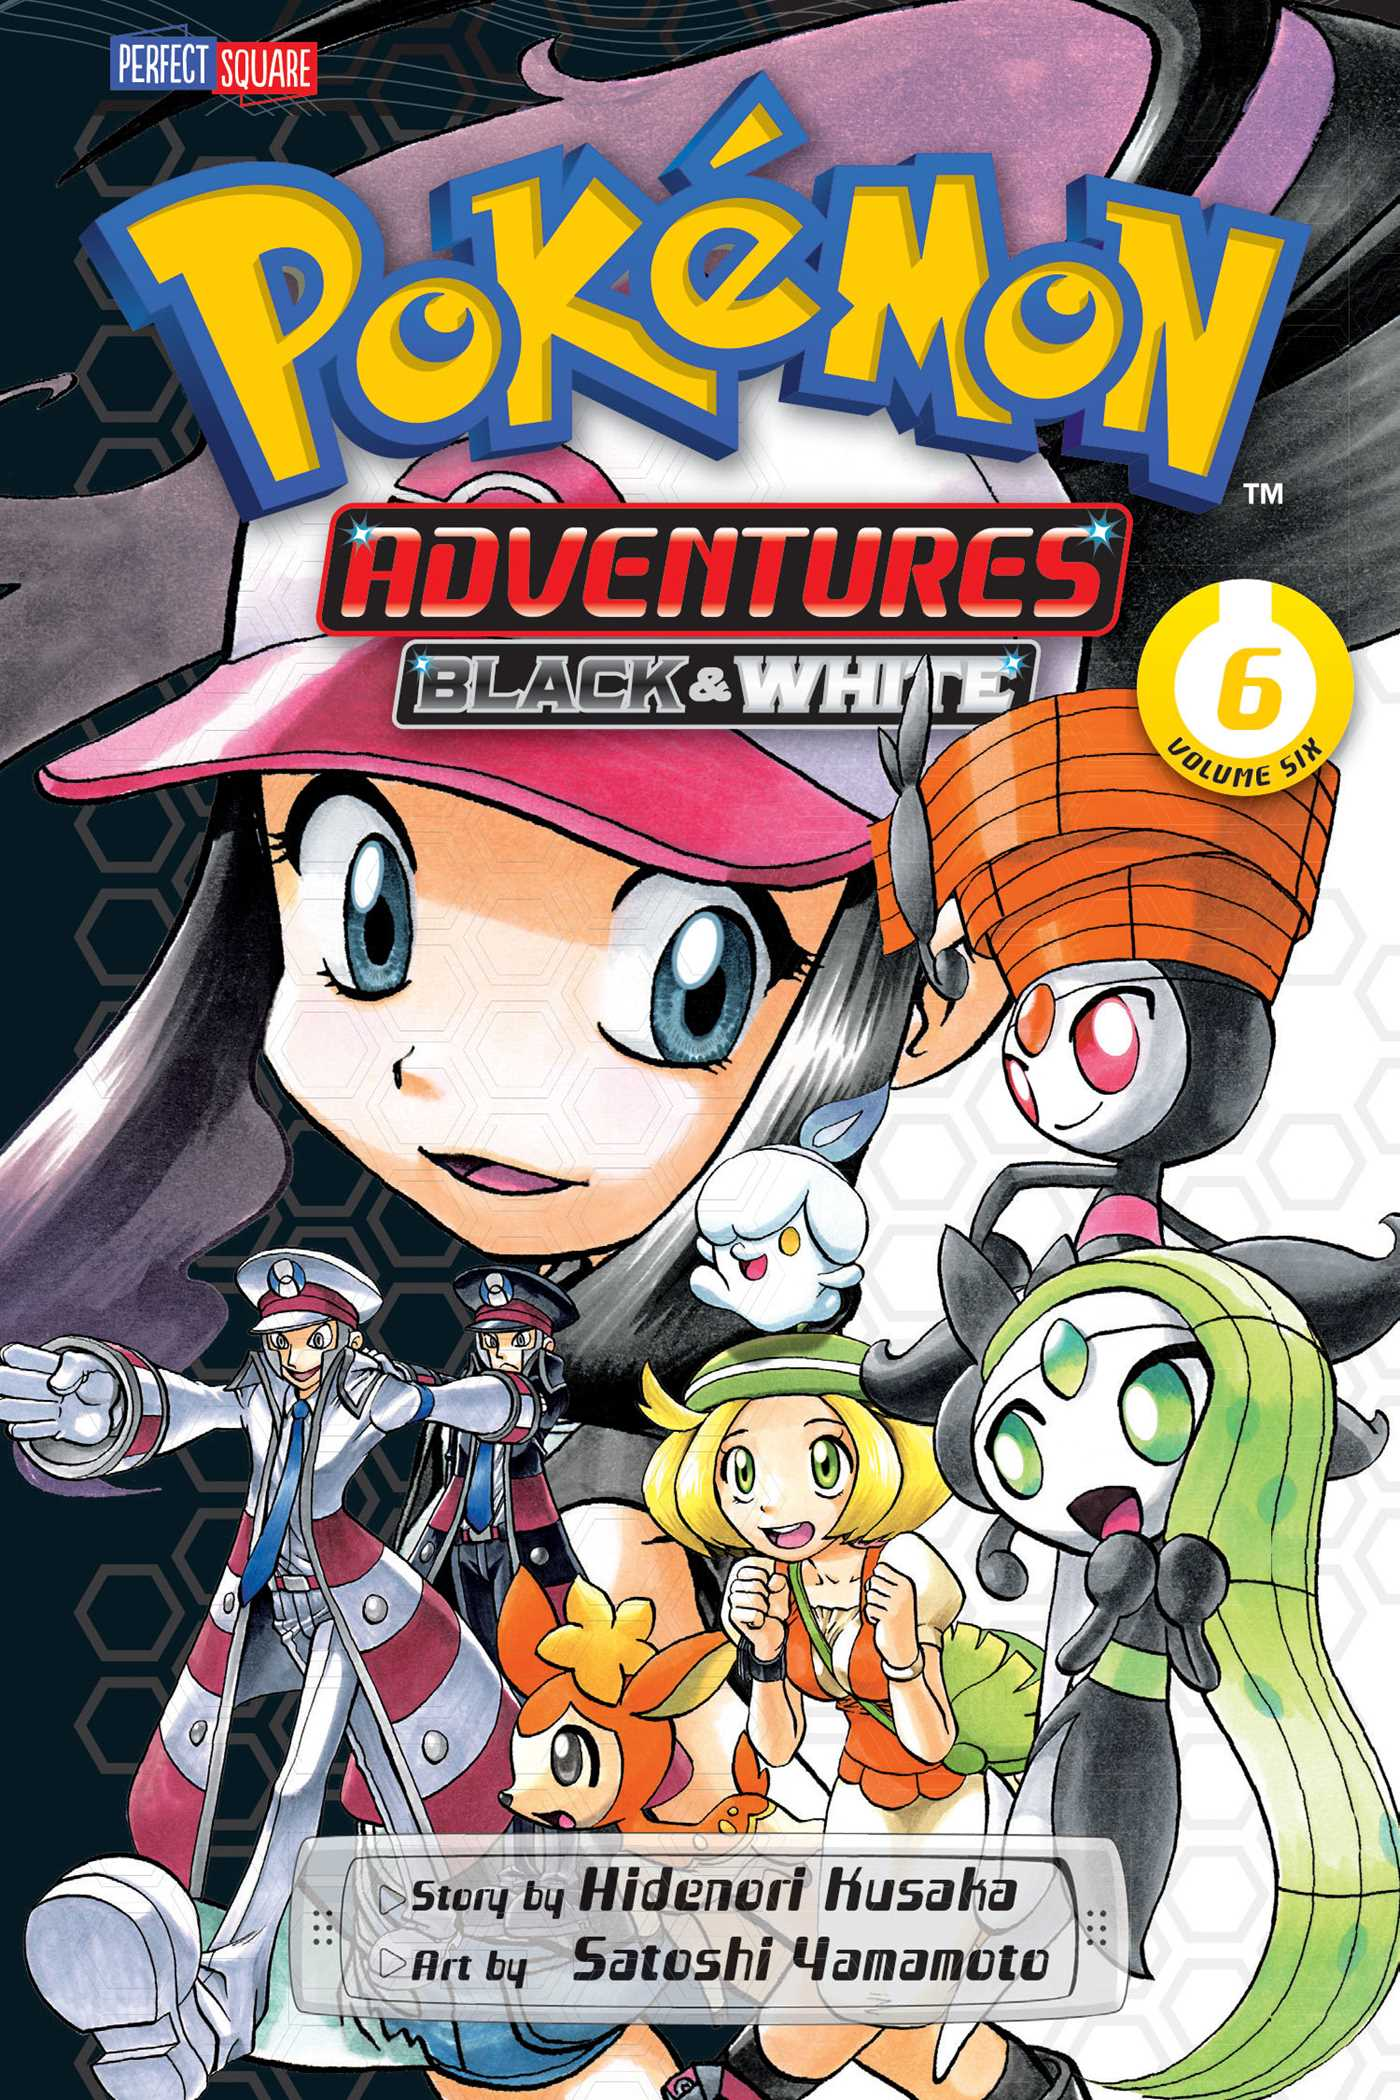 Pokemon-adventures-black-and-white-vol-6-9781421571812_hr